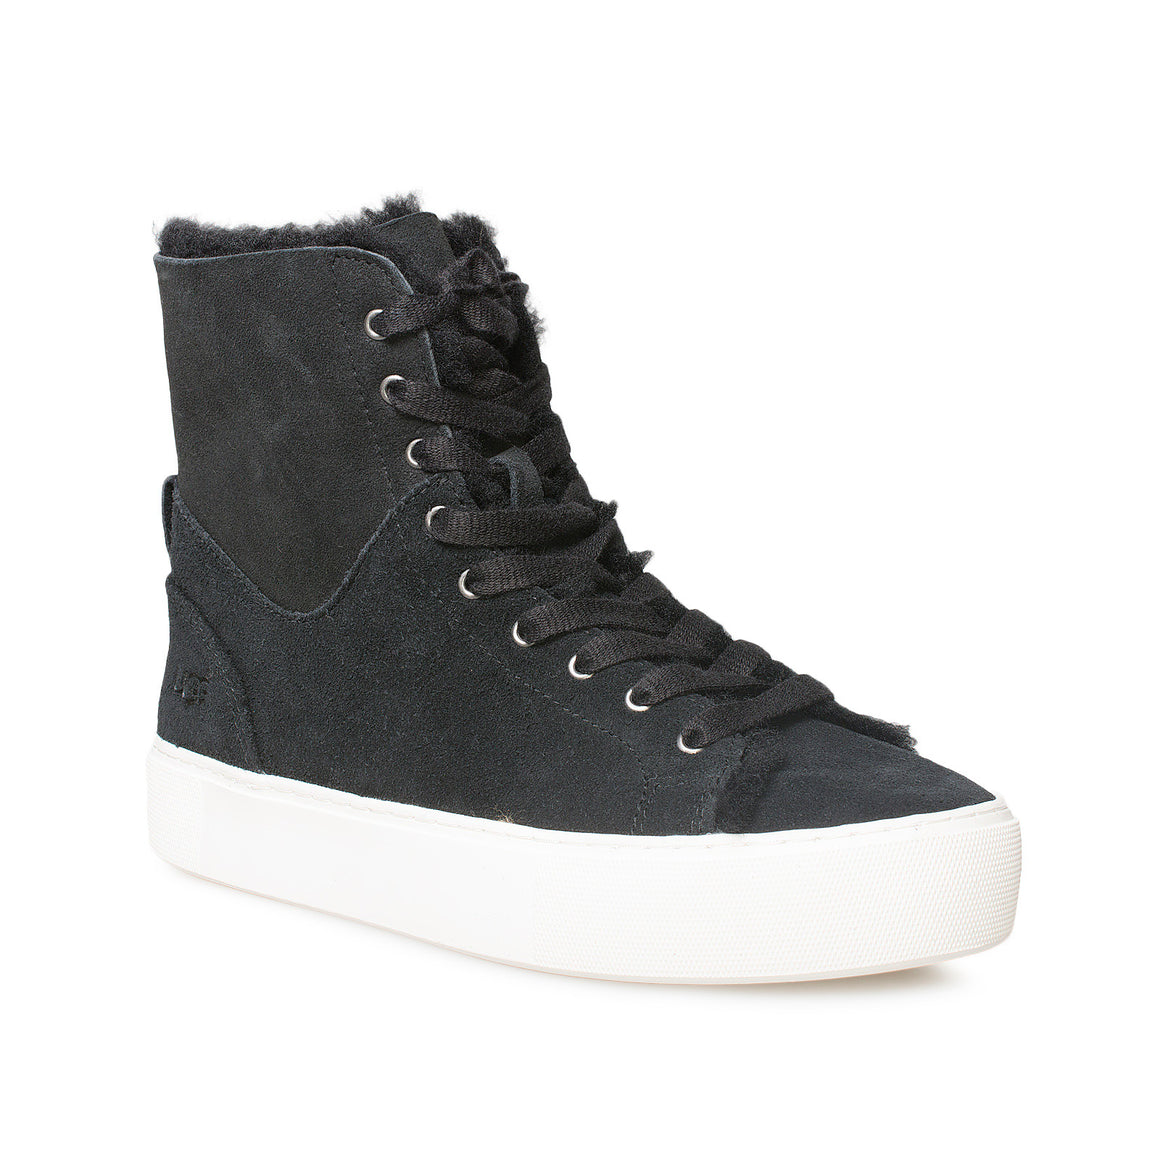 UGG Beven Black Sneakers - Women's